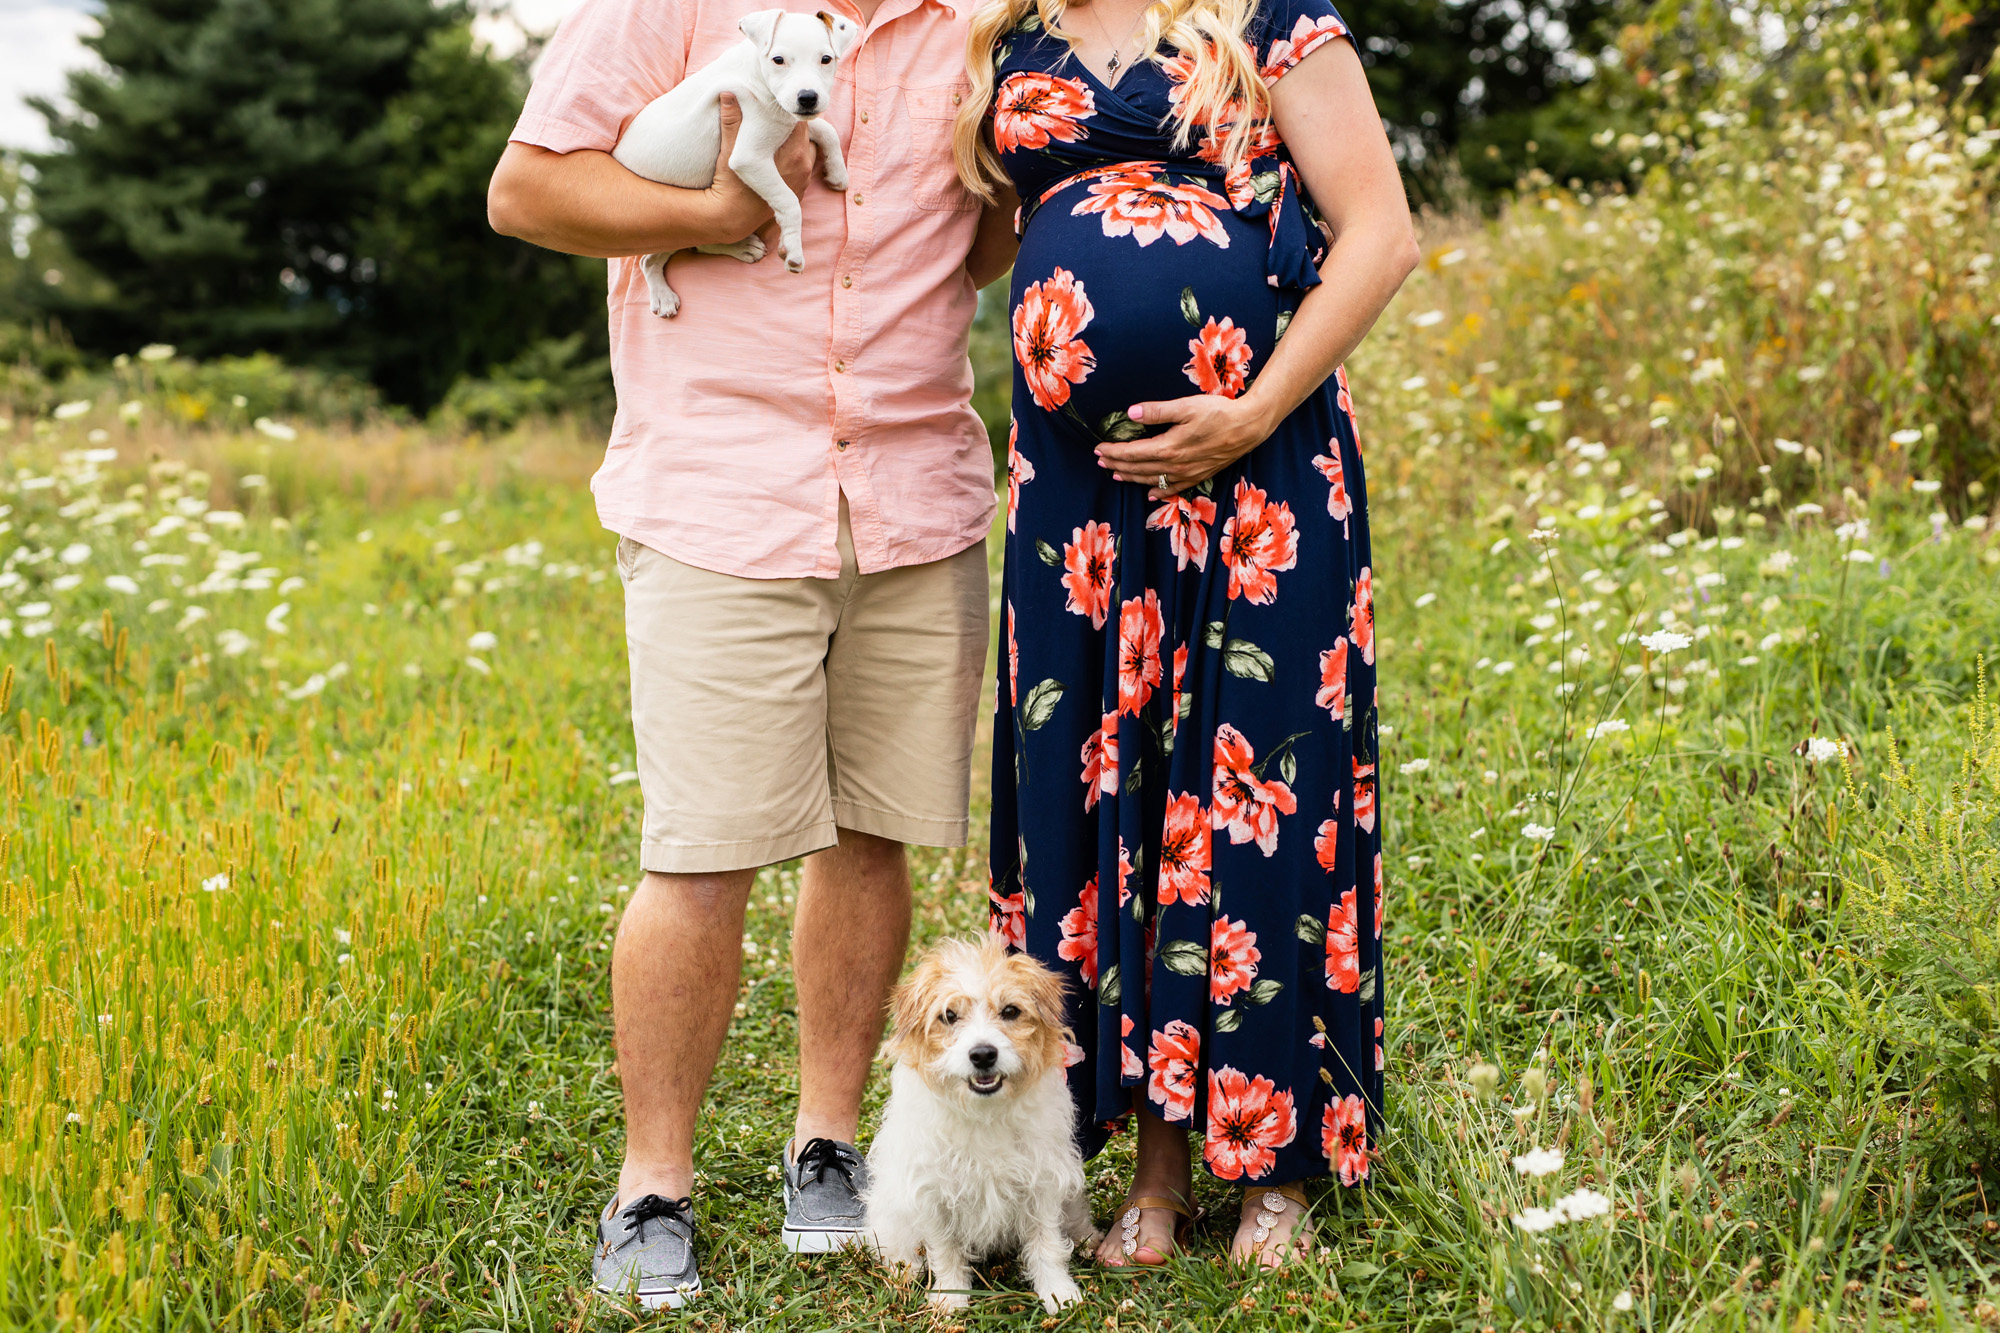 Maternity Photos with Dogs